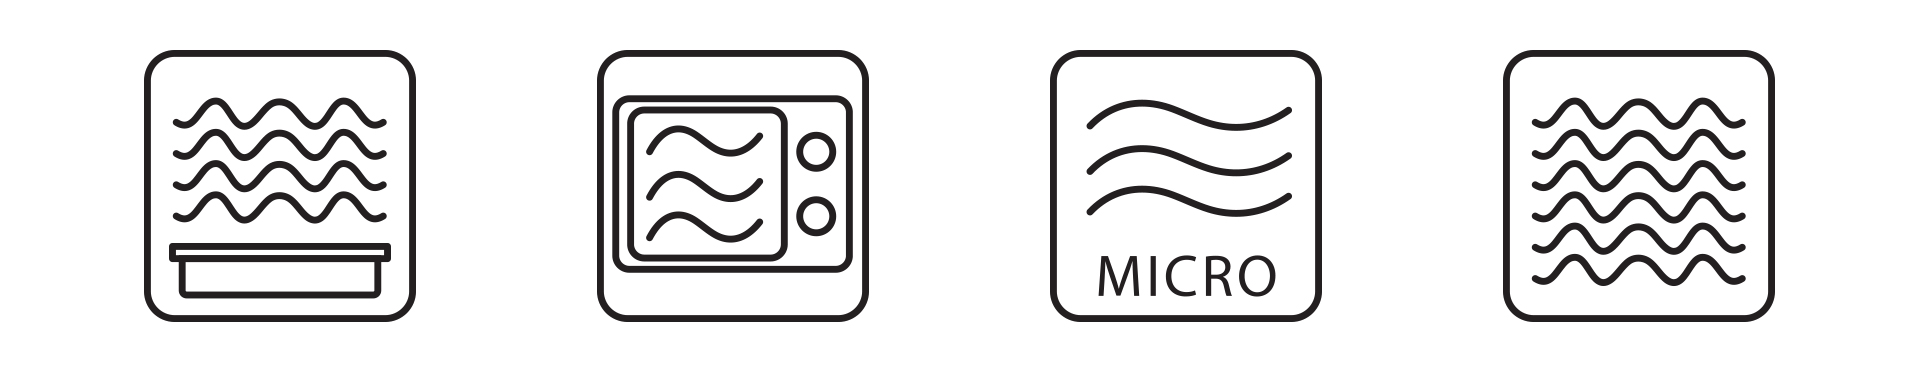 four symbols that represent microwave safe